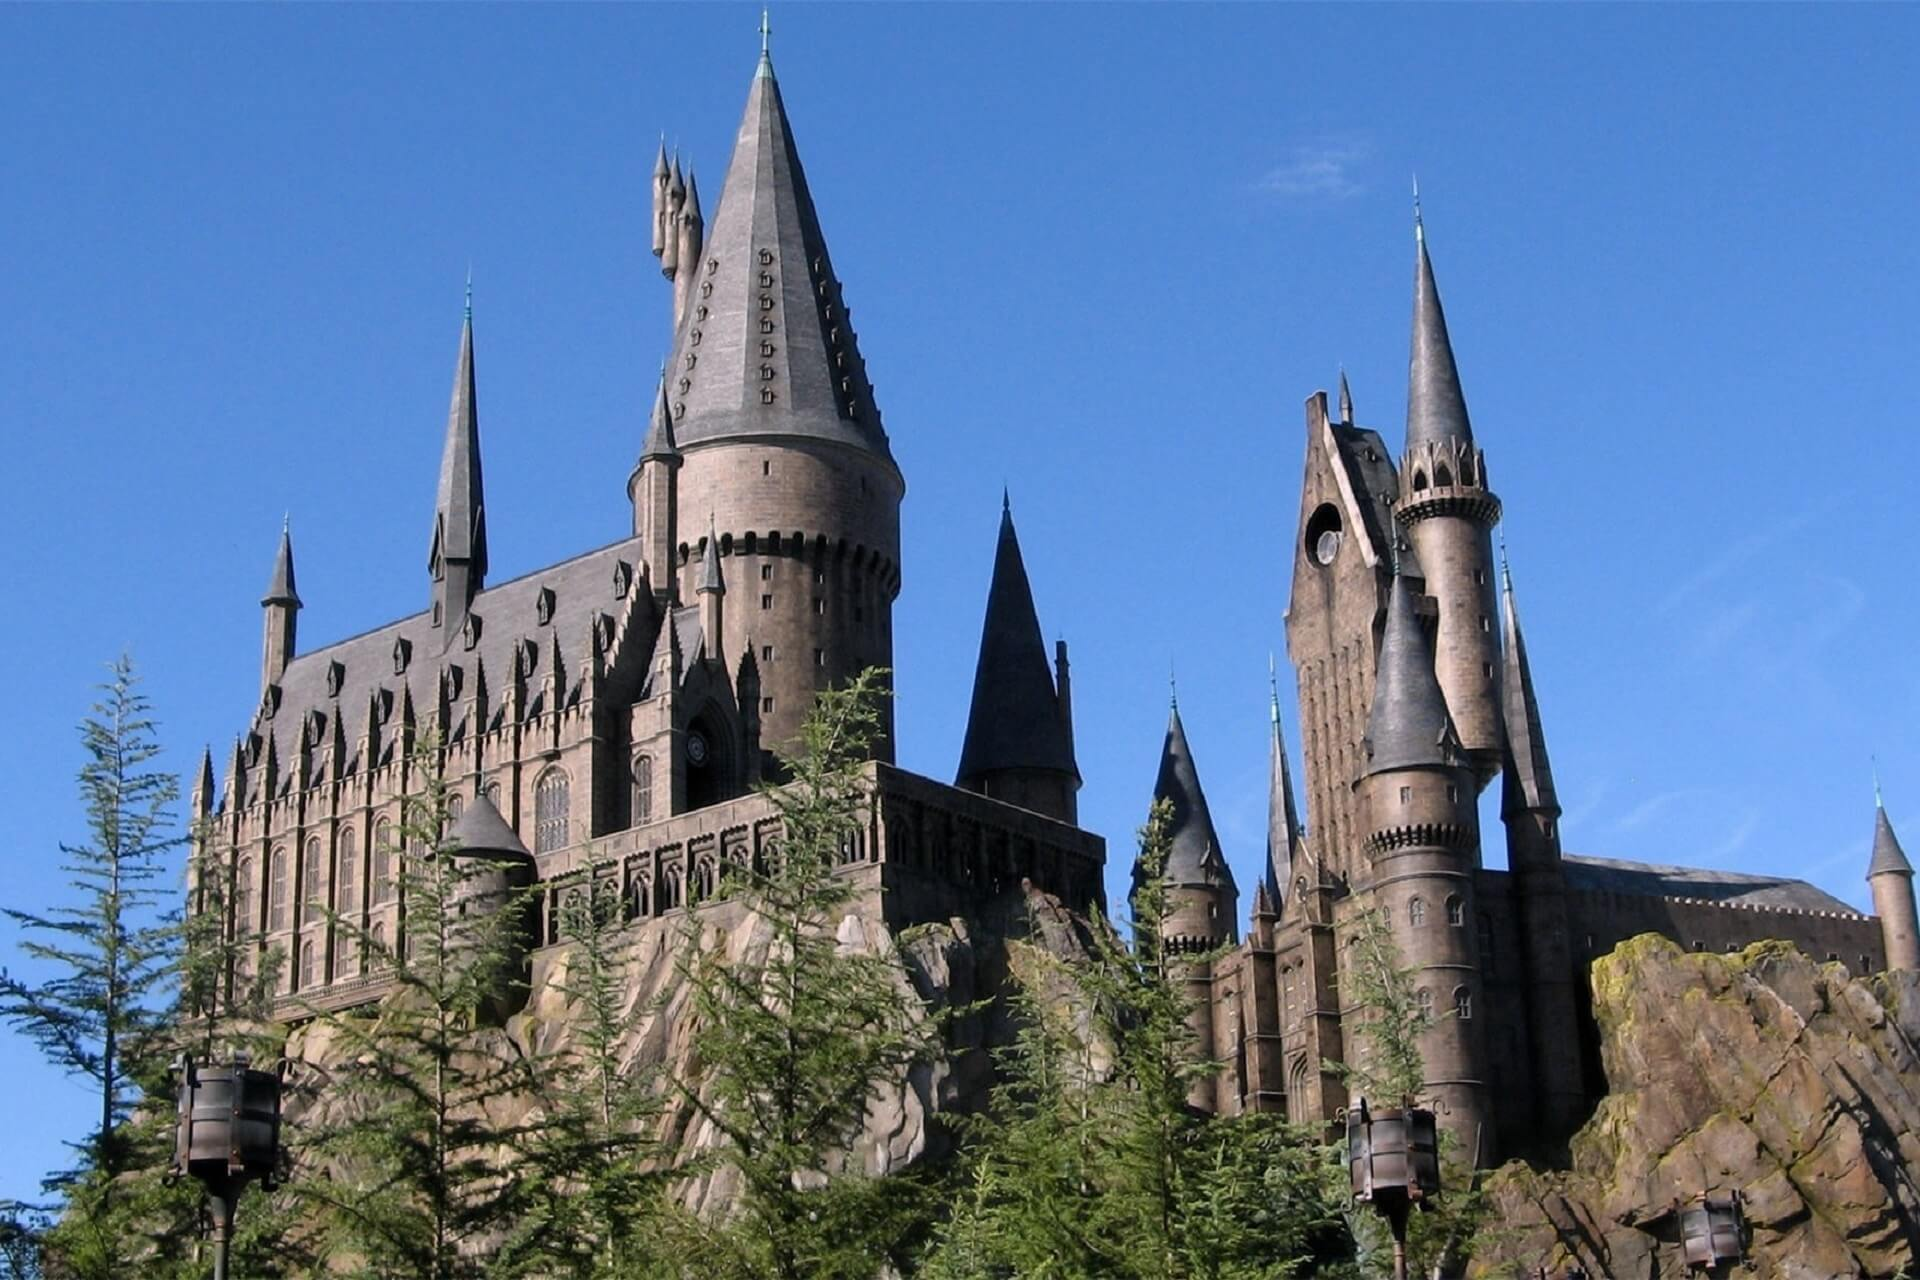 Vacation in Hogwarts